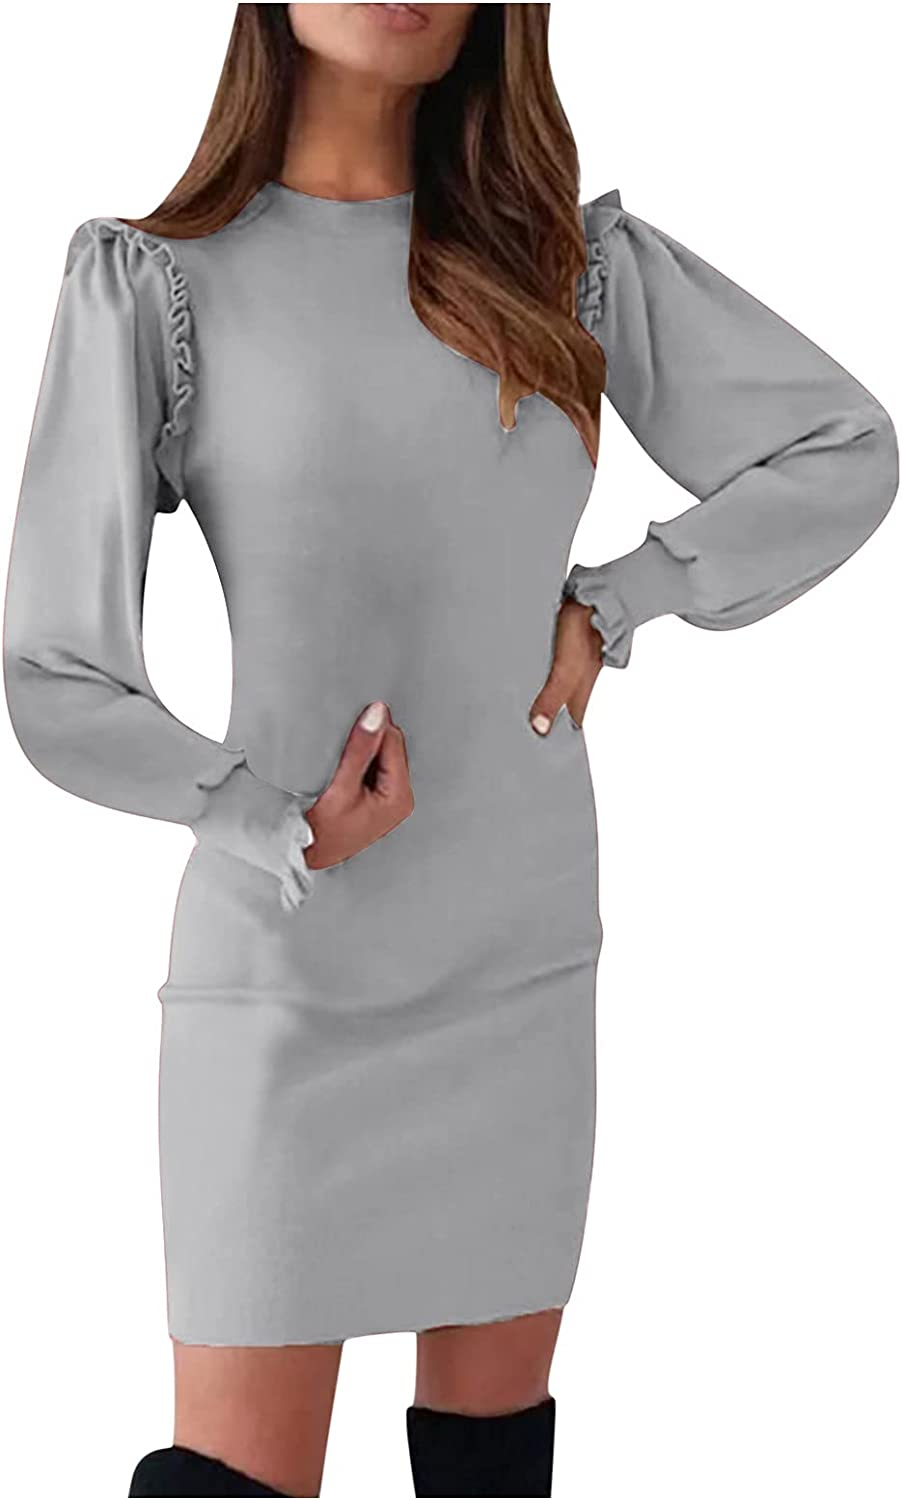 Long Sleeve Dress for Women Wedding Guest Pure Color Round Collar and Long Ruffle Sleeves Sexy Cocktail Bodycon Dresses